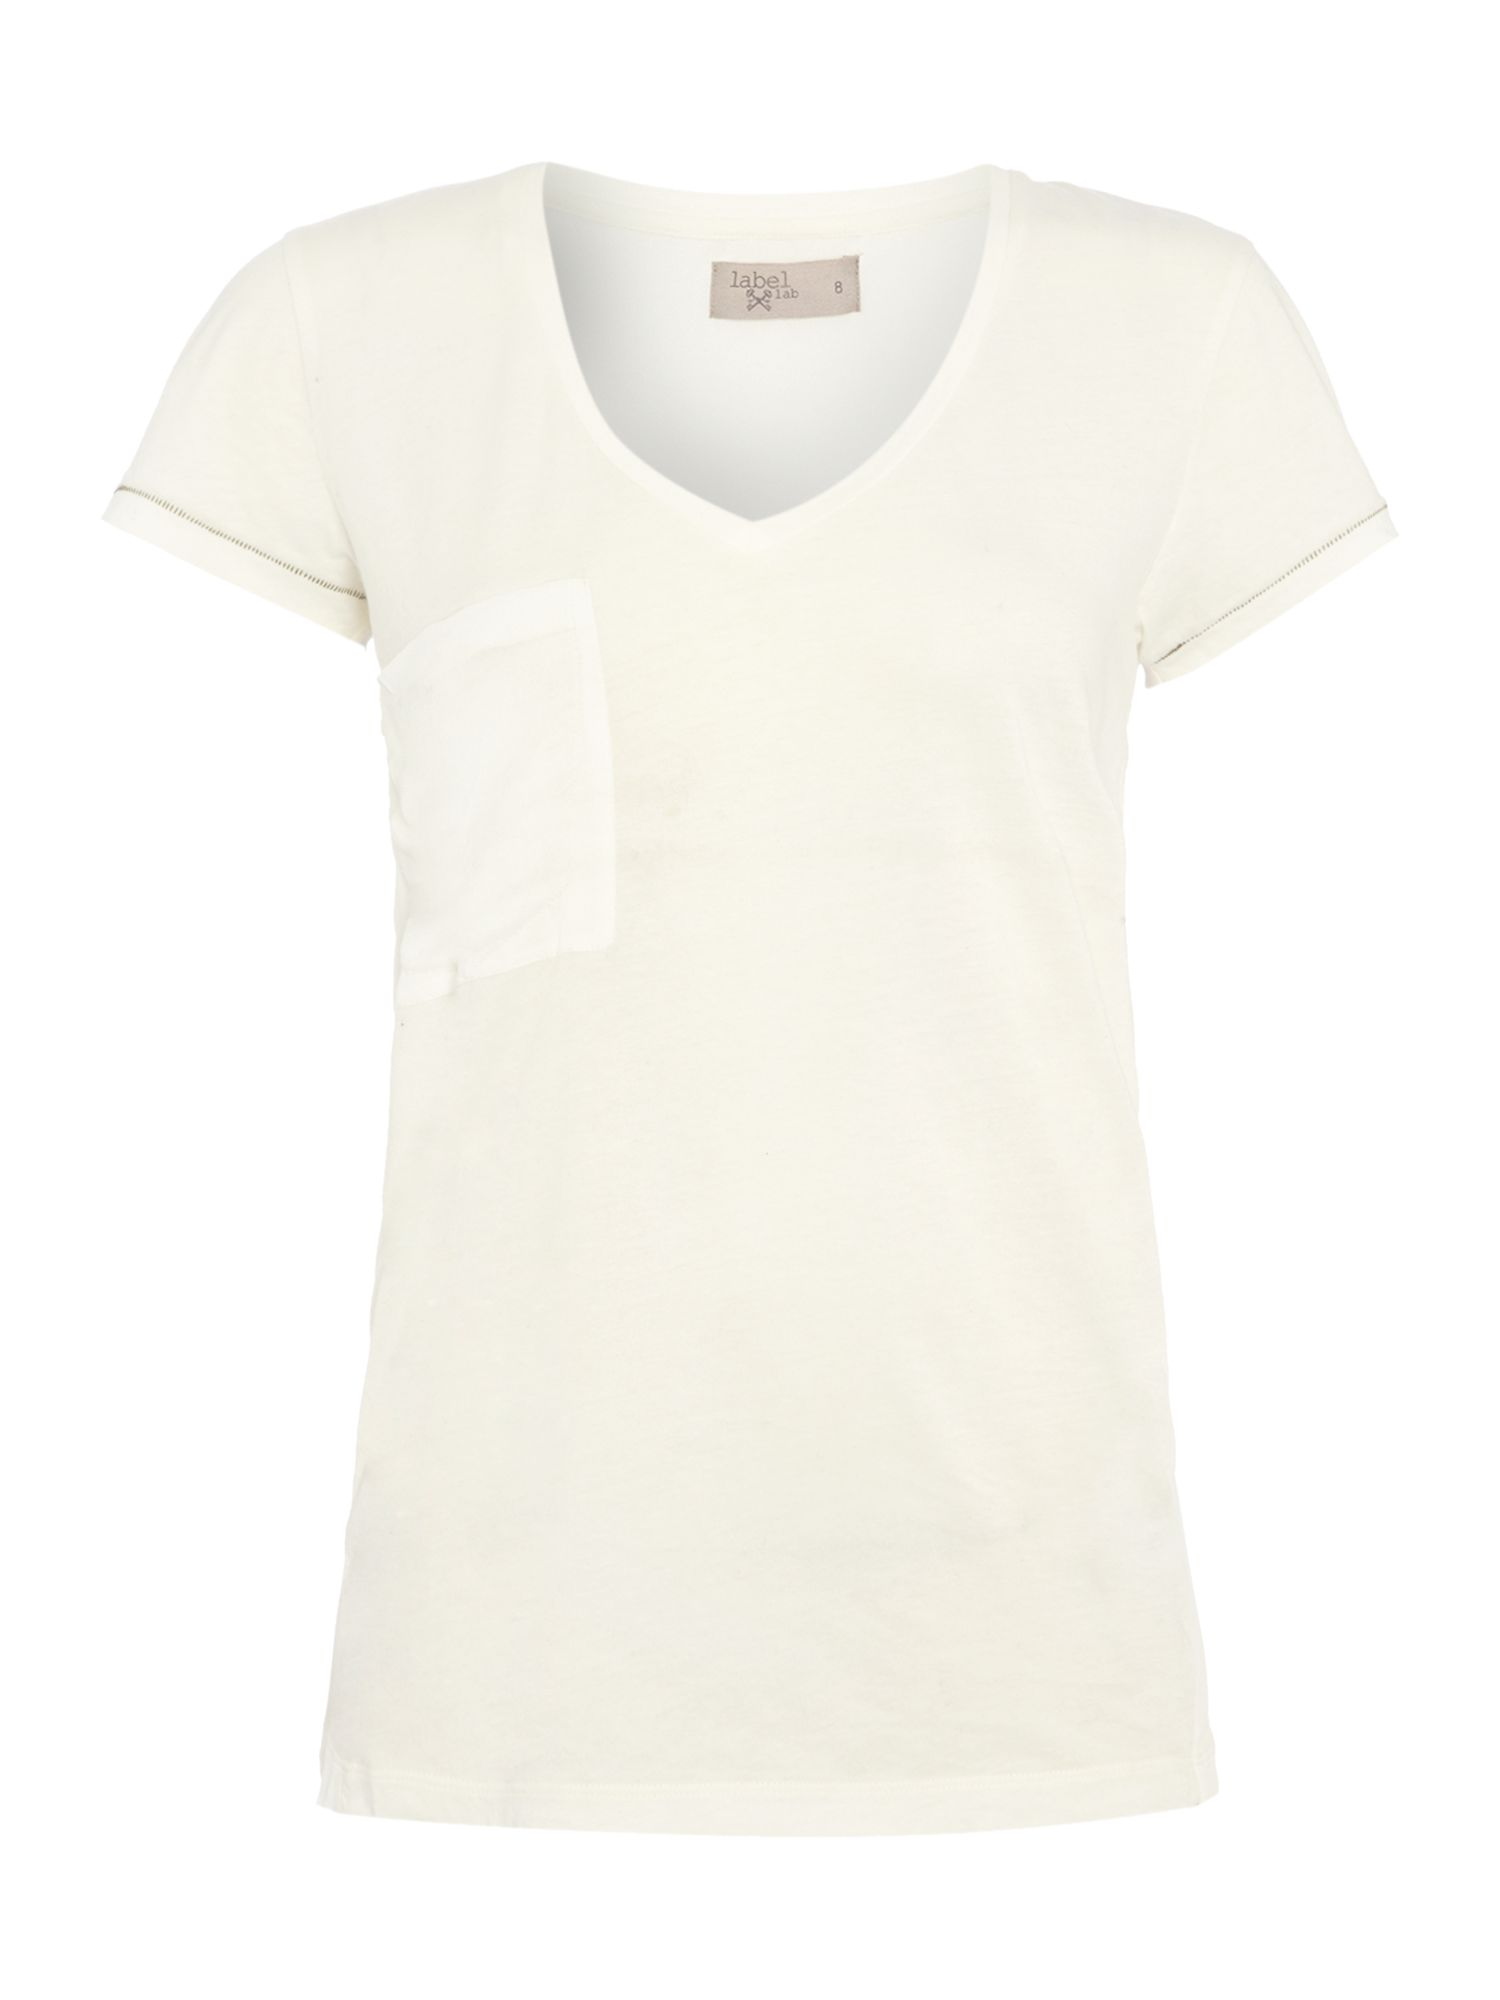 Woven back jersey mix tee